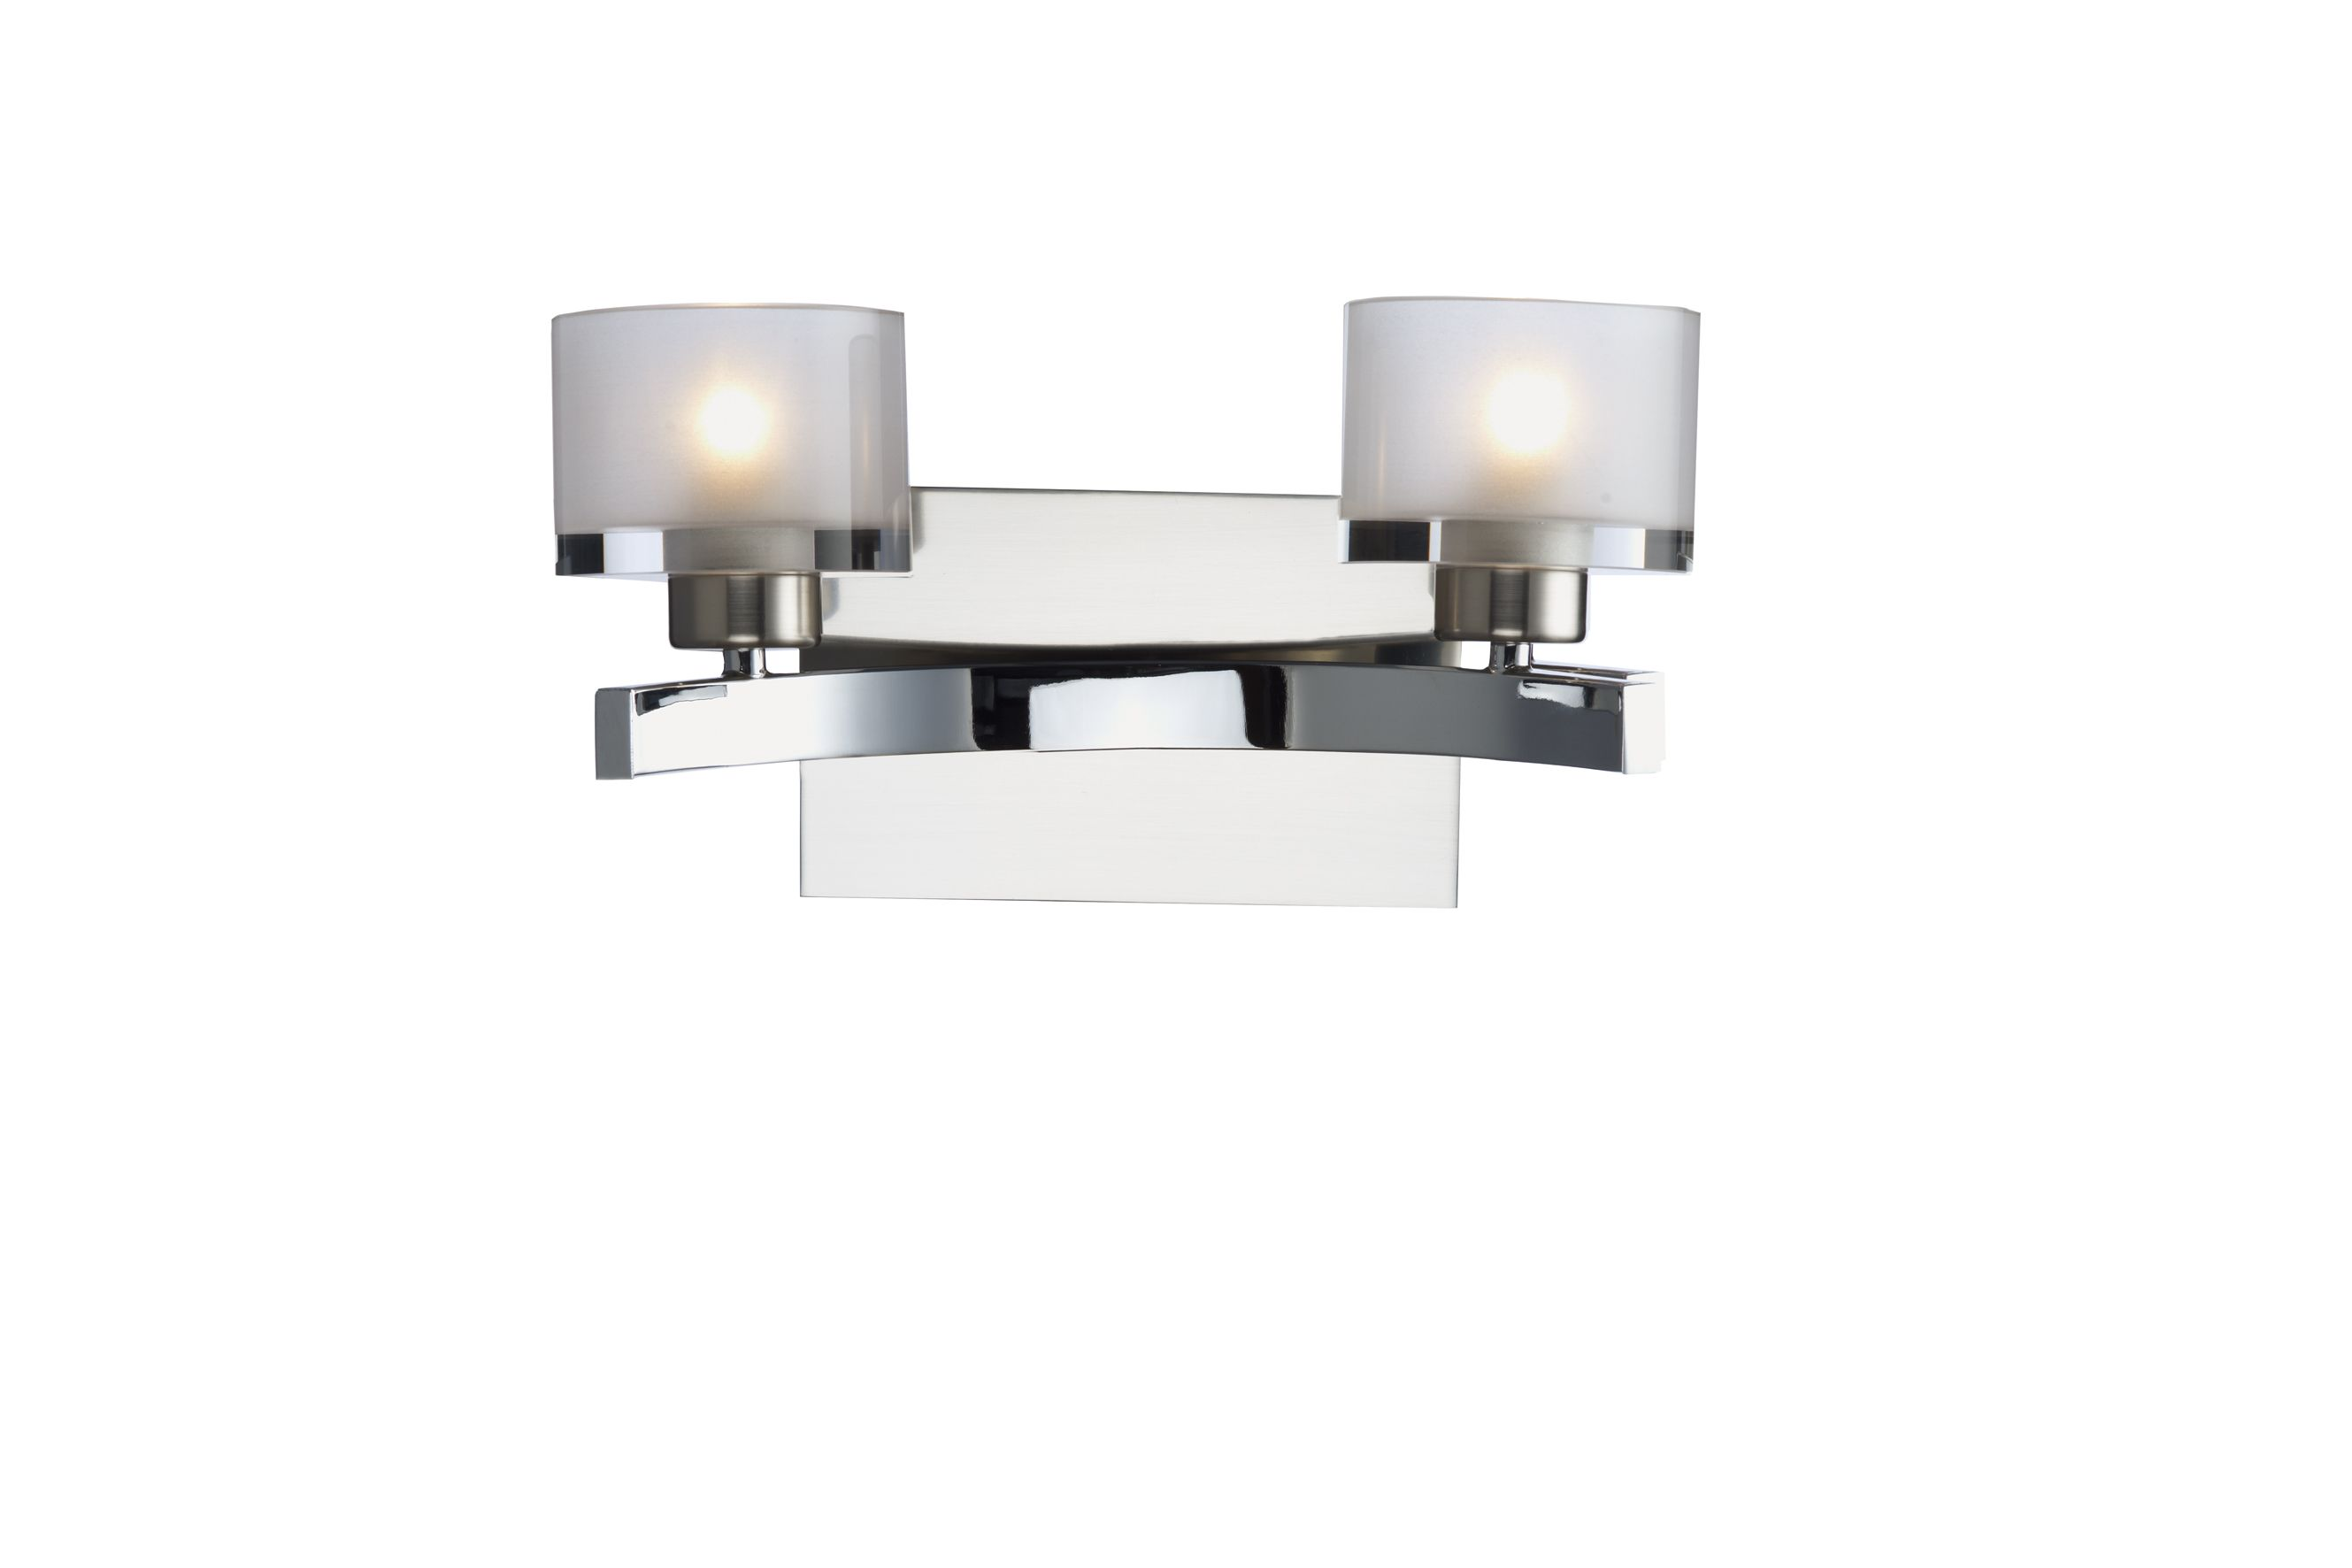 Double Insulated Class 2 Wall Lights : Eton Double Wall Bracket Polished Chrome Satin Chrome Class 2 Double Insulated BXETO0950-17